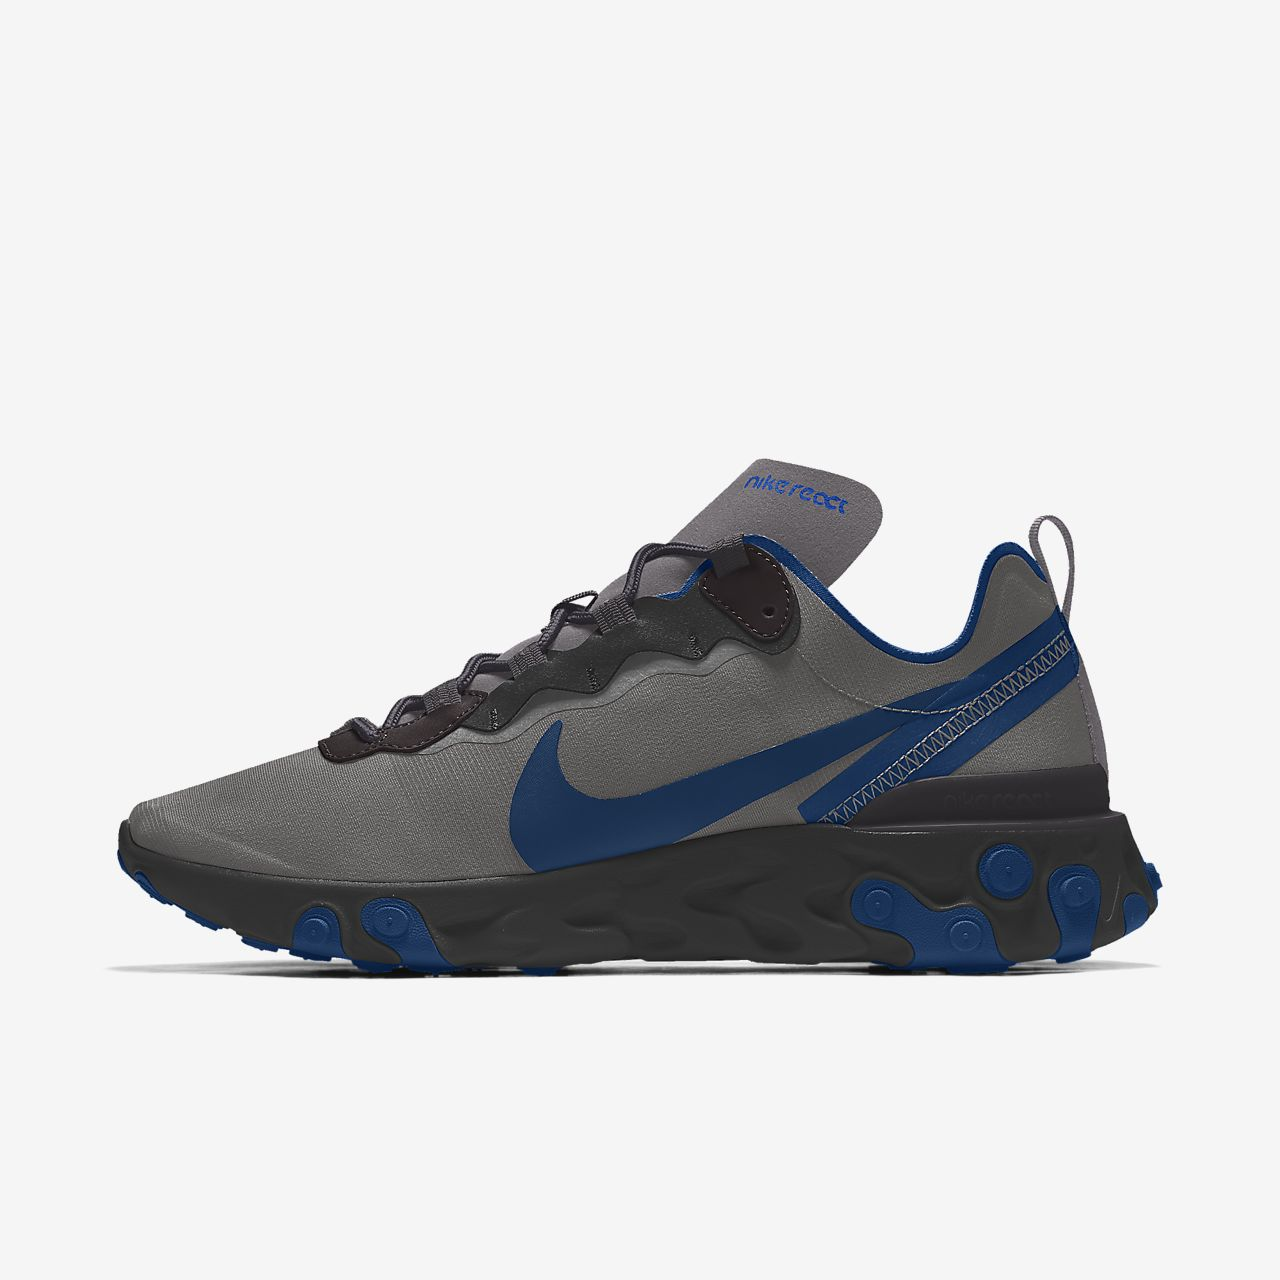 Specialdesignad livsstilssko Nike React Element 55 By You för män